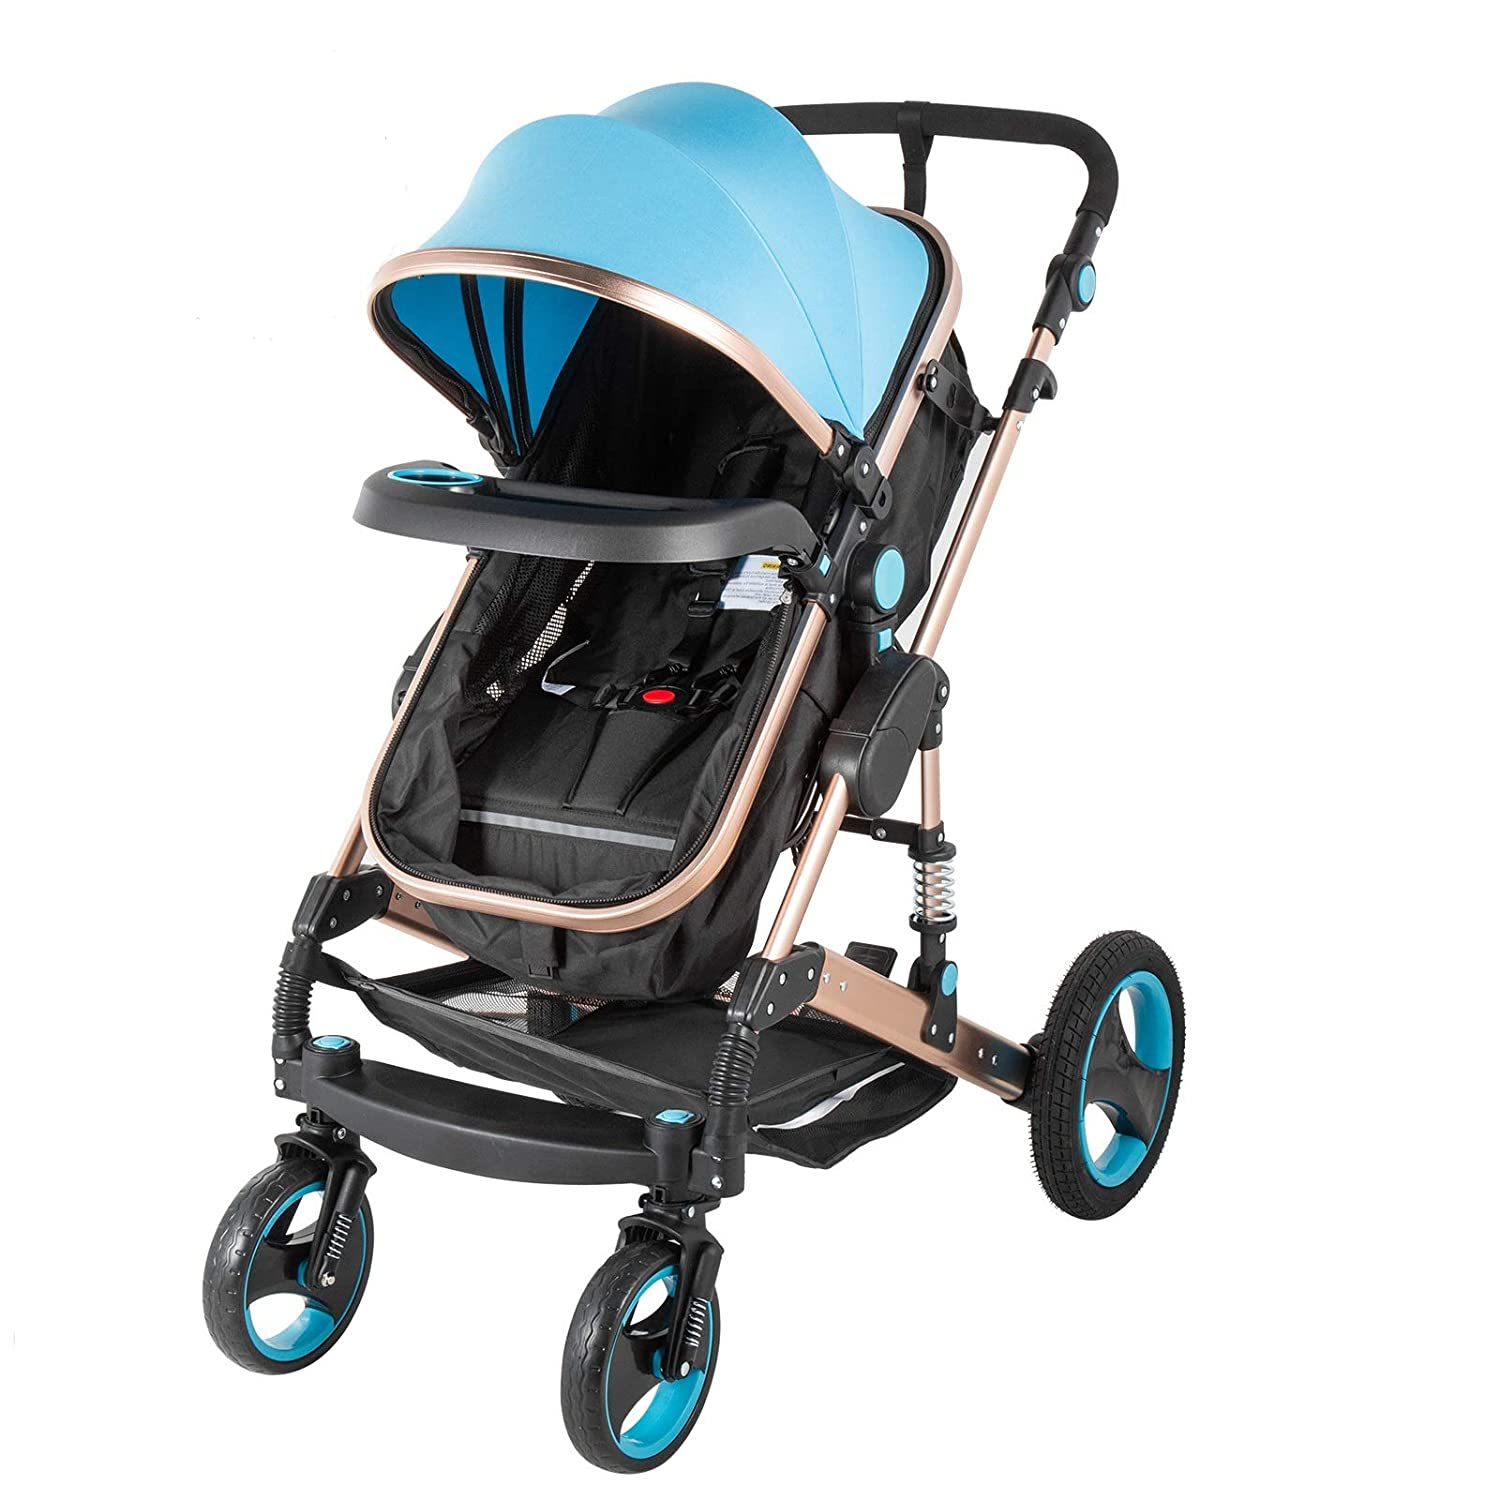 Happybuy 2 in 1 Portable Baby Stroller Blue Anti-Shock Springs Foldable Luxury Baby Stroller Adjustable High View Pram Stollers for Babys